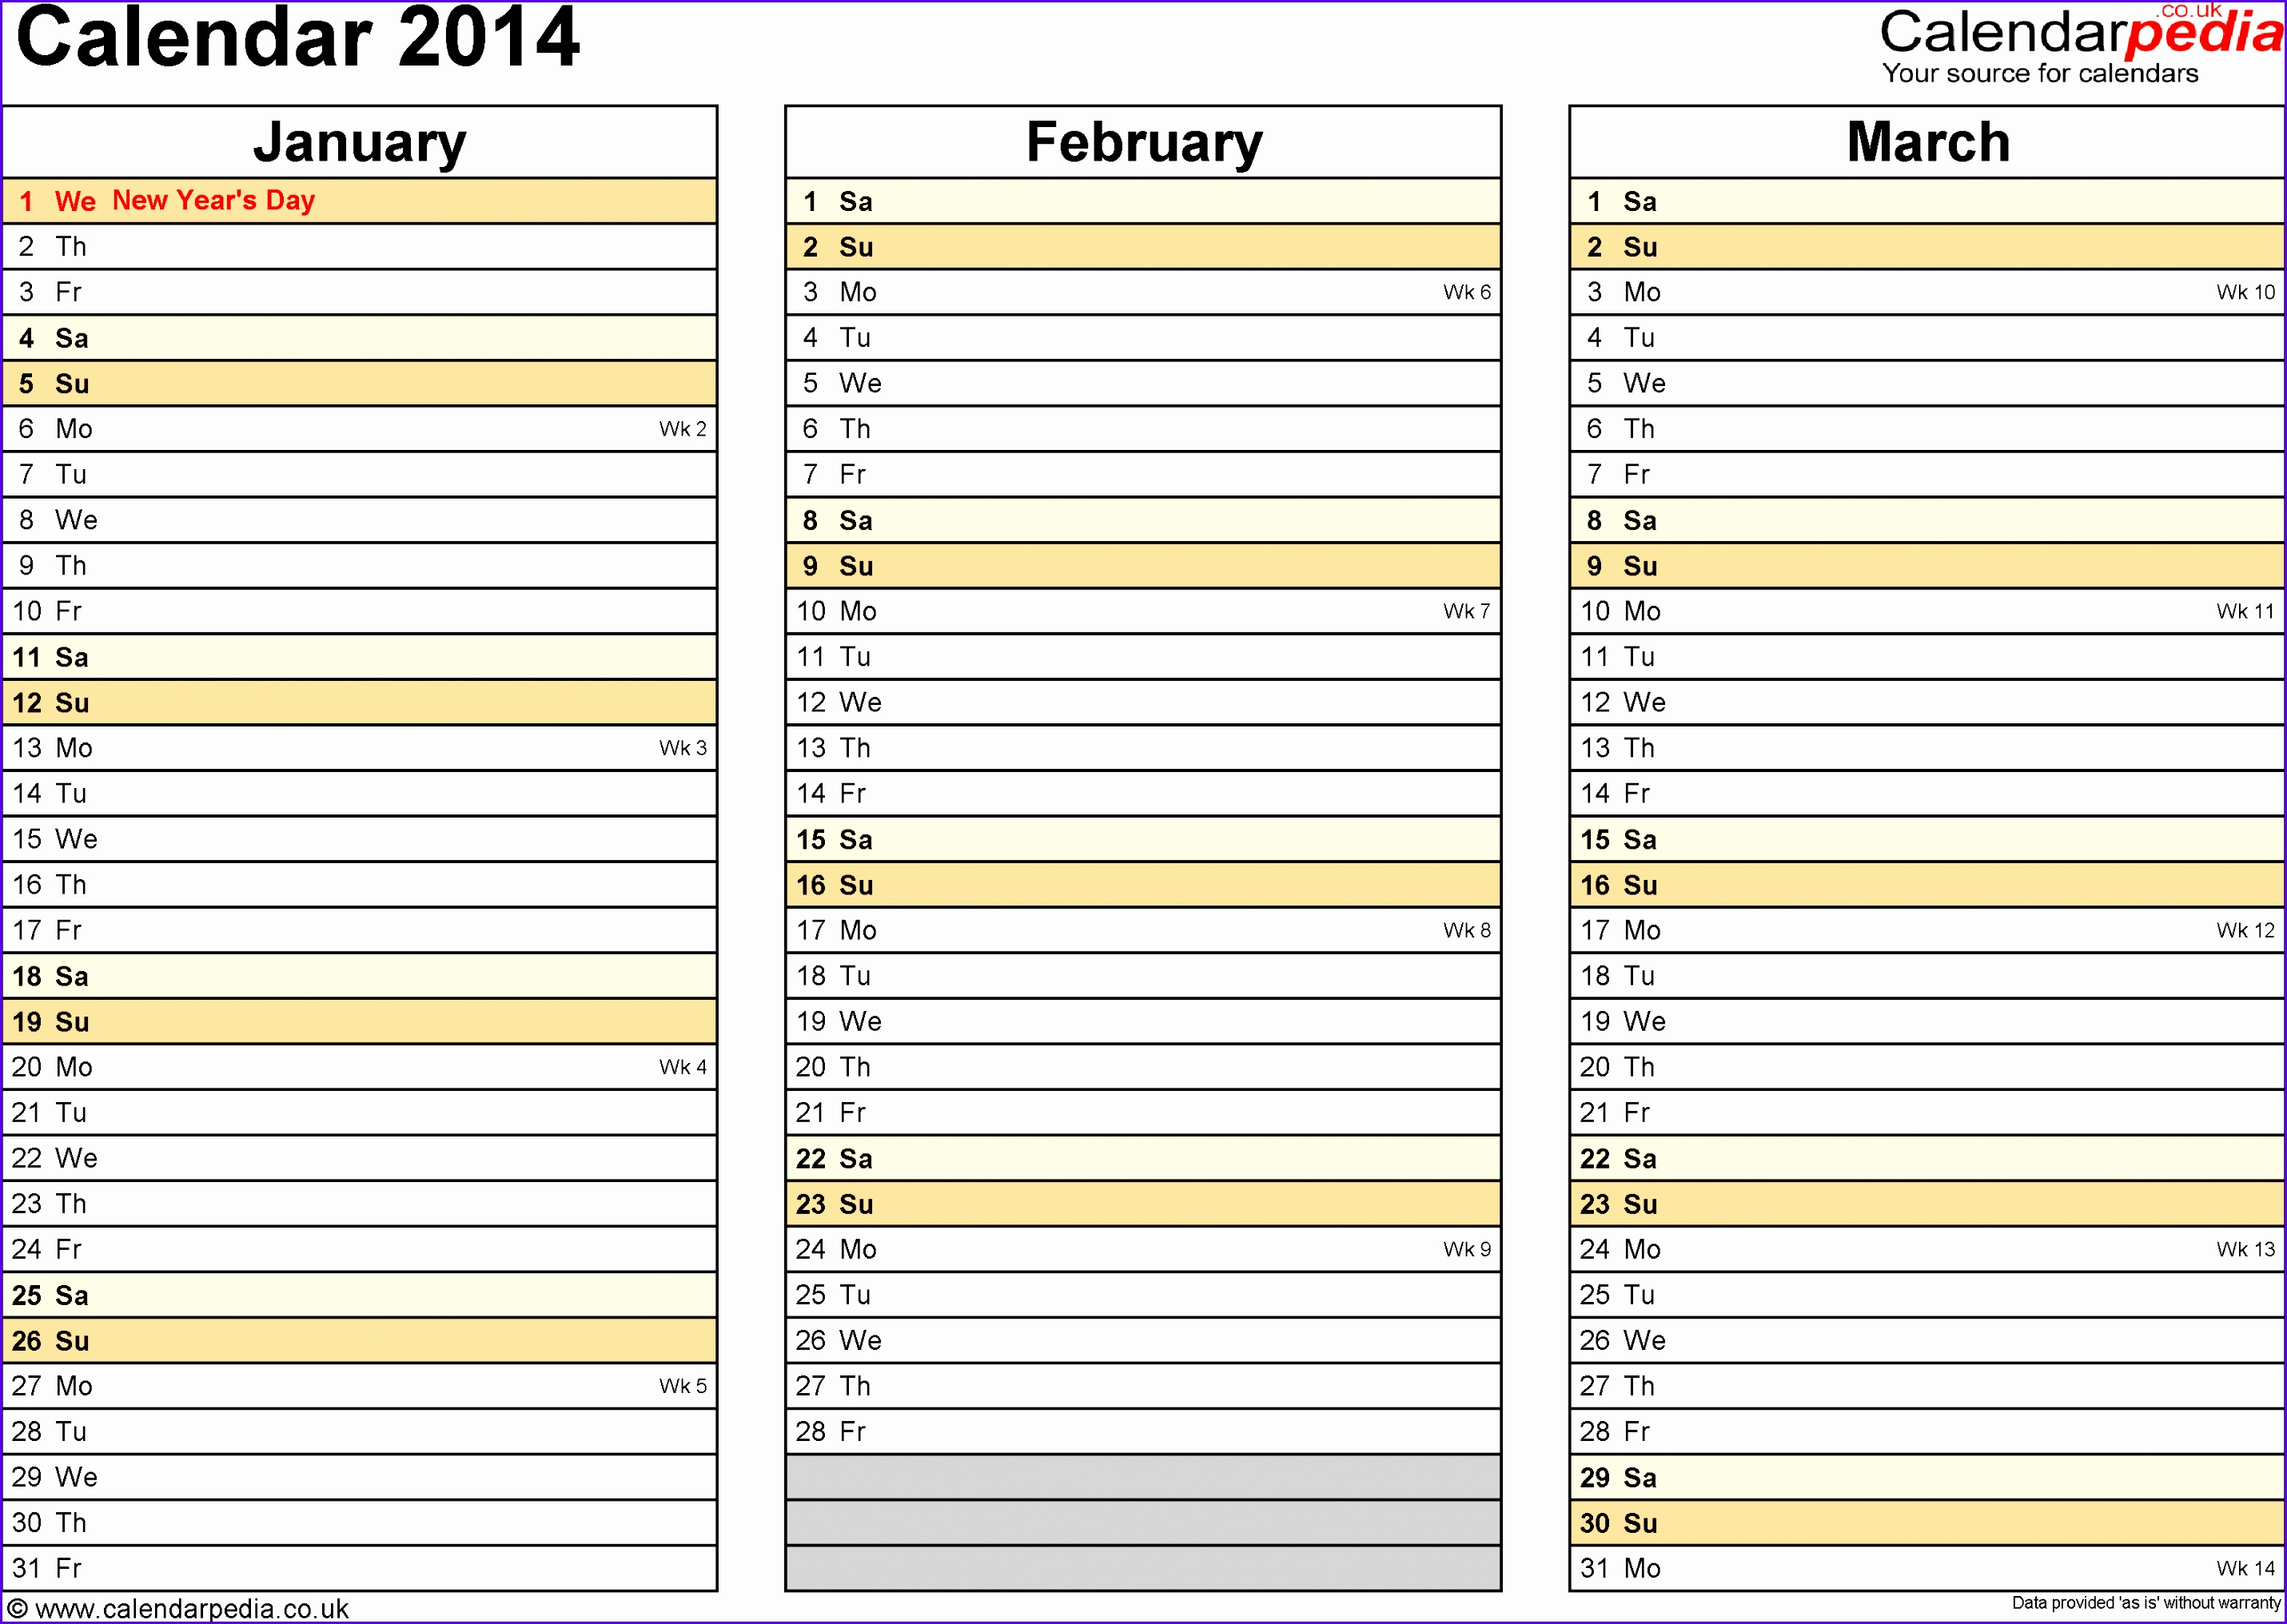 Template 5 Yearly calendar 2014 as Excel template landscape orientation 4 pages 28612032